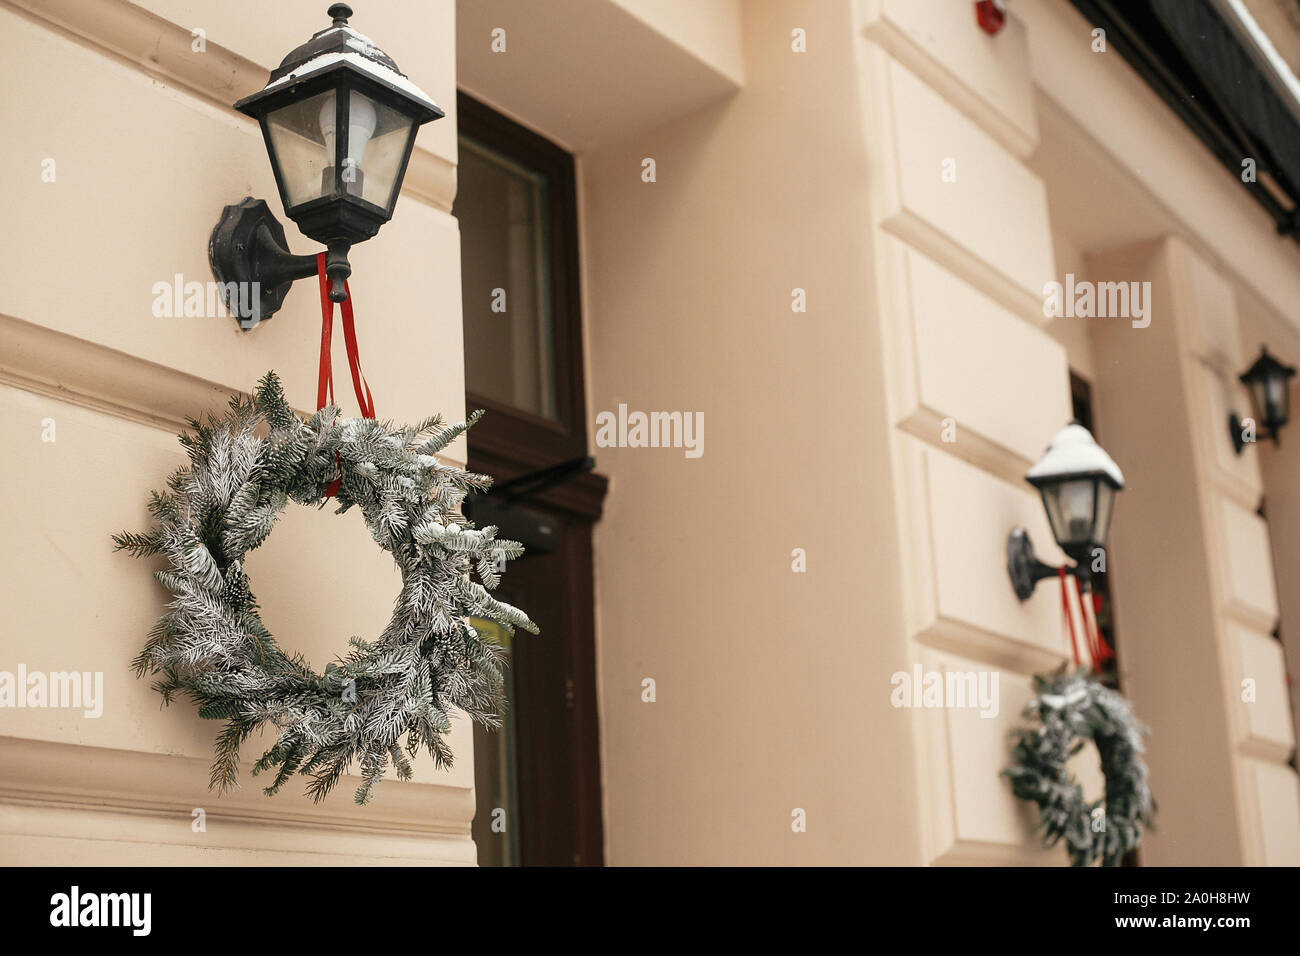 Christmas Street Decor Stylish Christmas Rustic Wreaths On